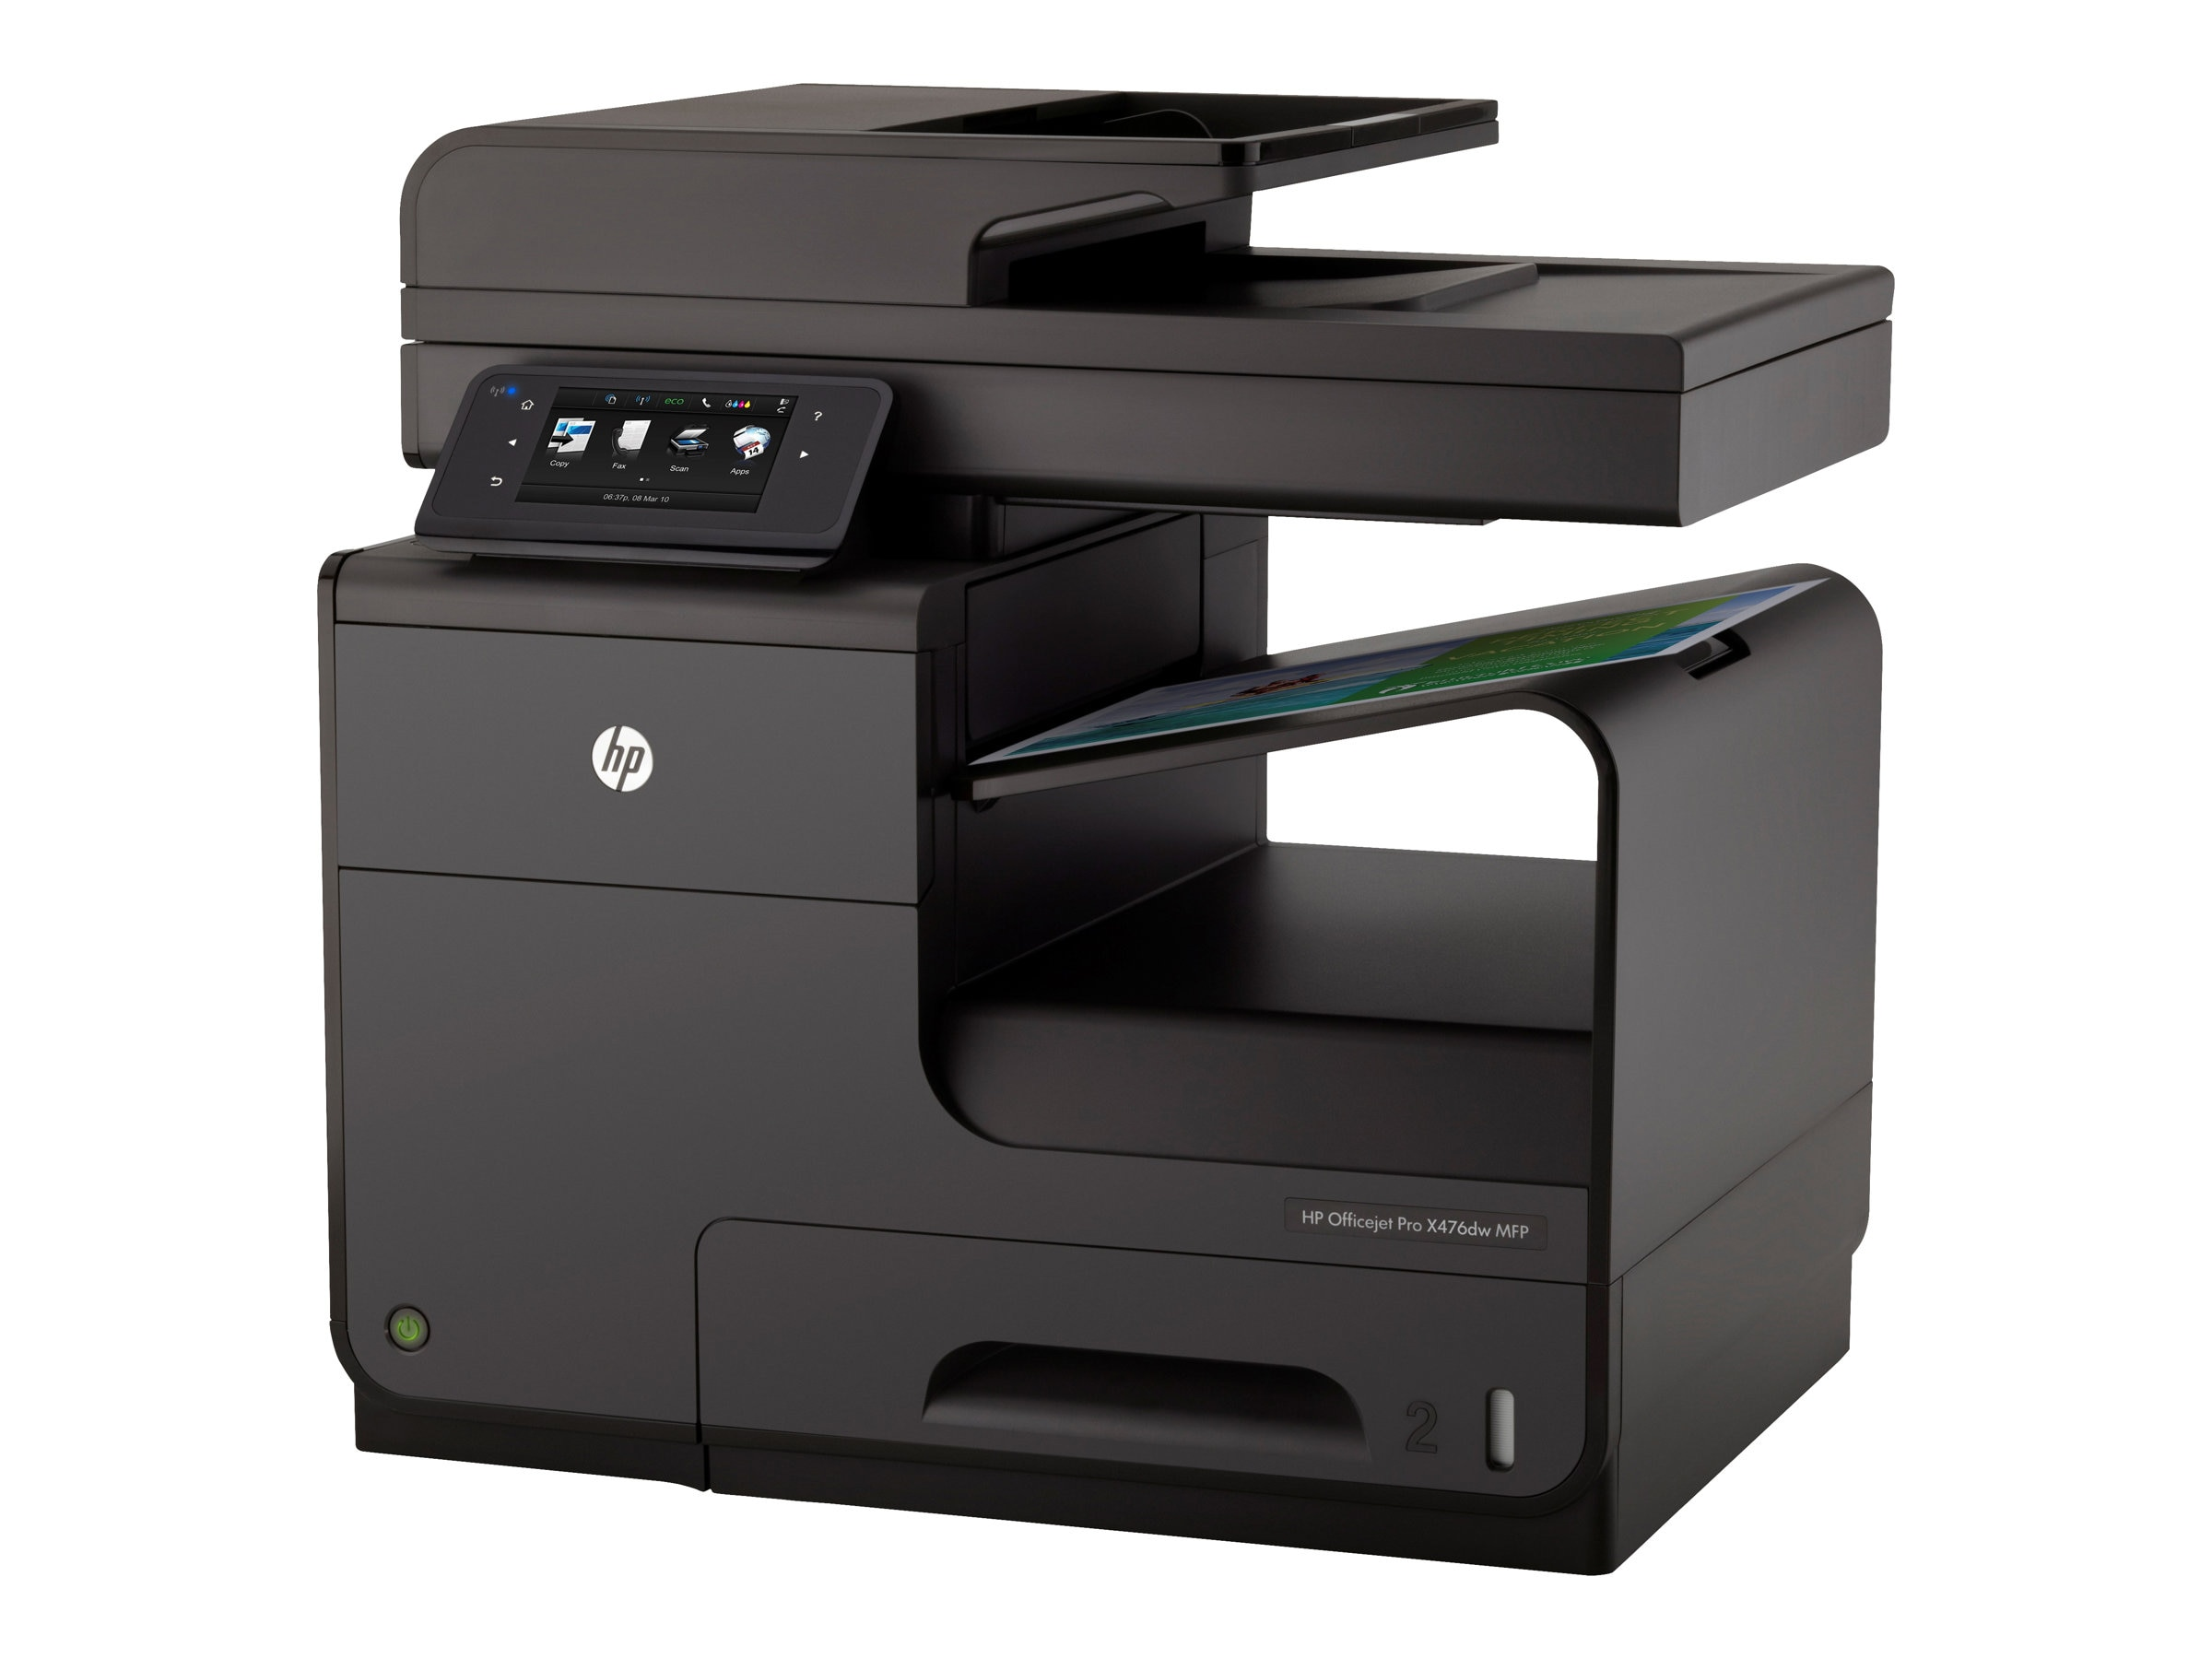 HP Officejet Pro X Series X 476dw Color MFP $699 - $200 instant rebate = $499 Ends 2 29 16